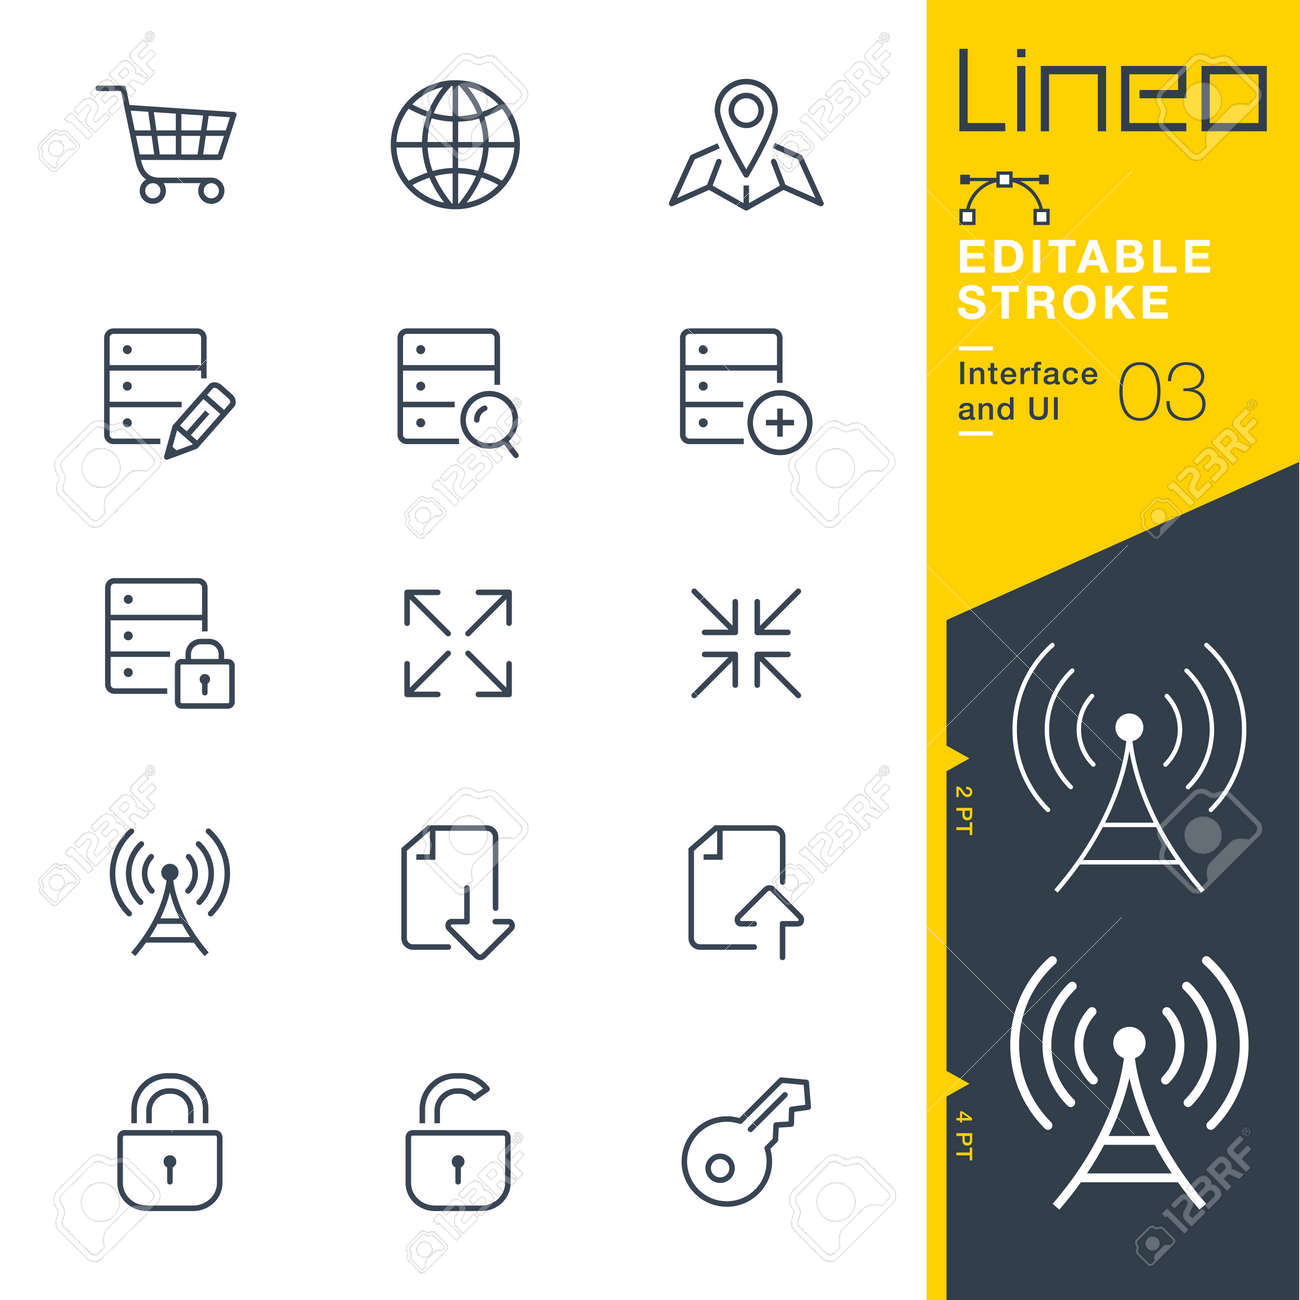 Lineo Editable Stroke - Interface and UI line icon Vector Icons - Adjust stroke weight - Change to any color - 86959603